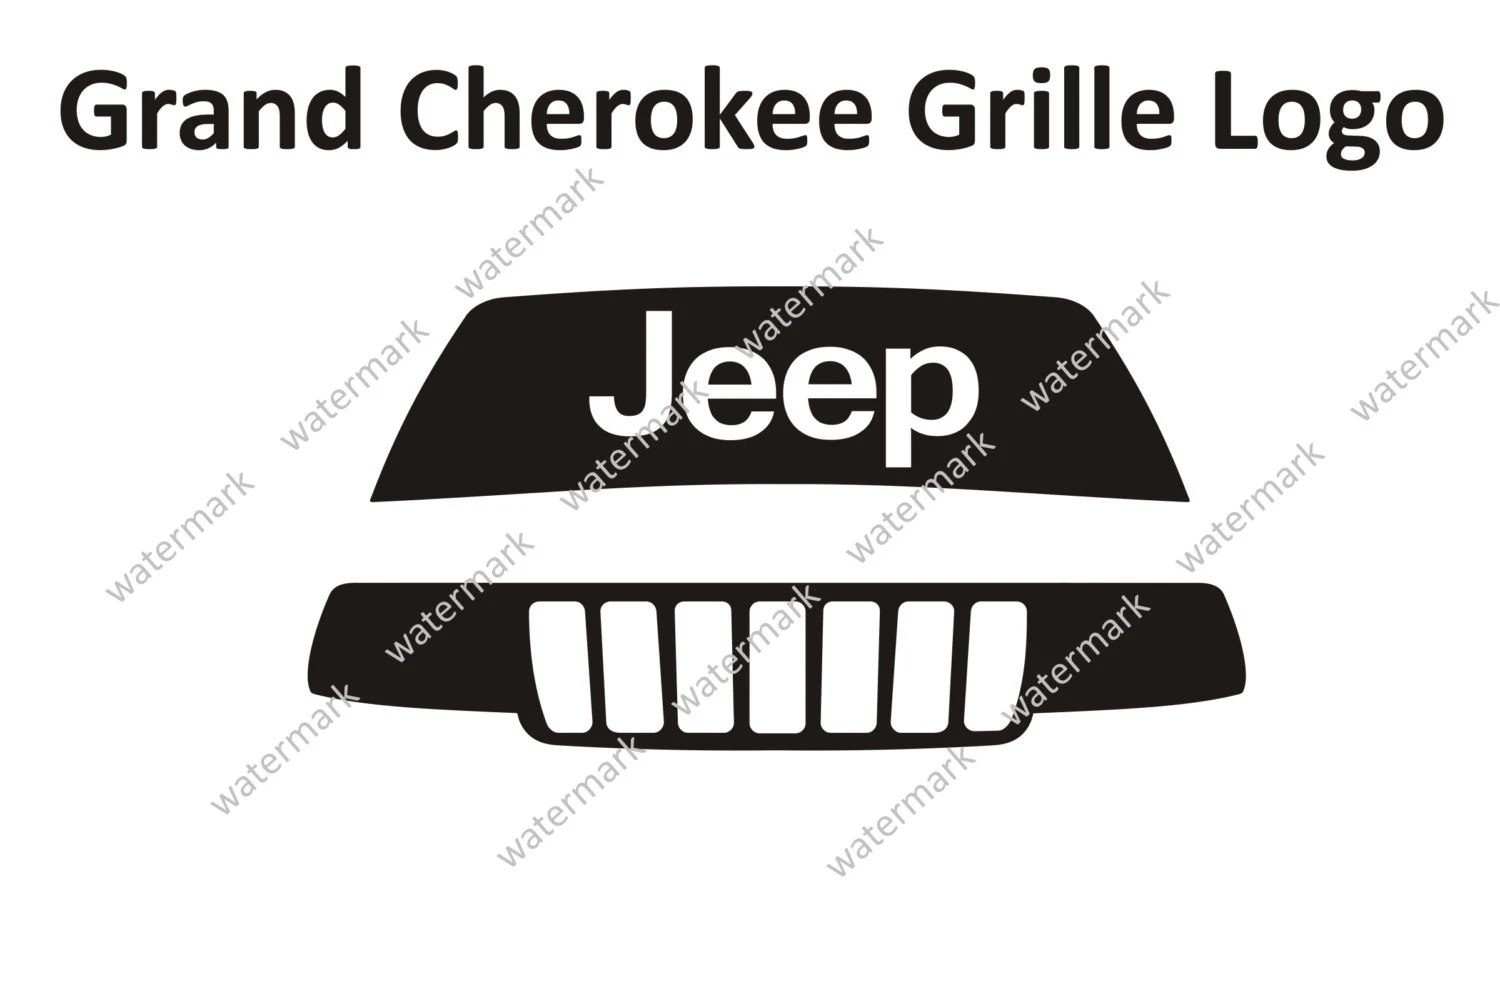 Jeep Grand Cherokee Limited Laredo Grille Logo Decal by